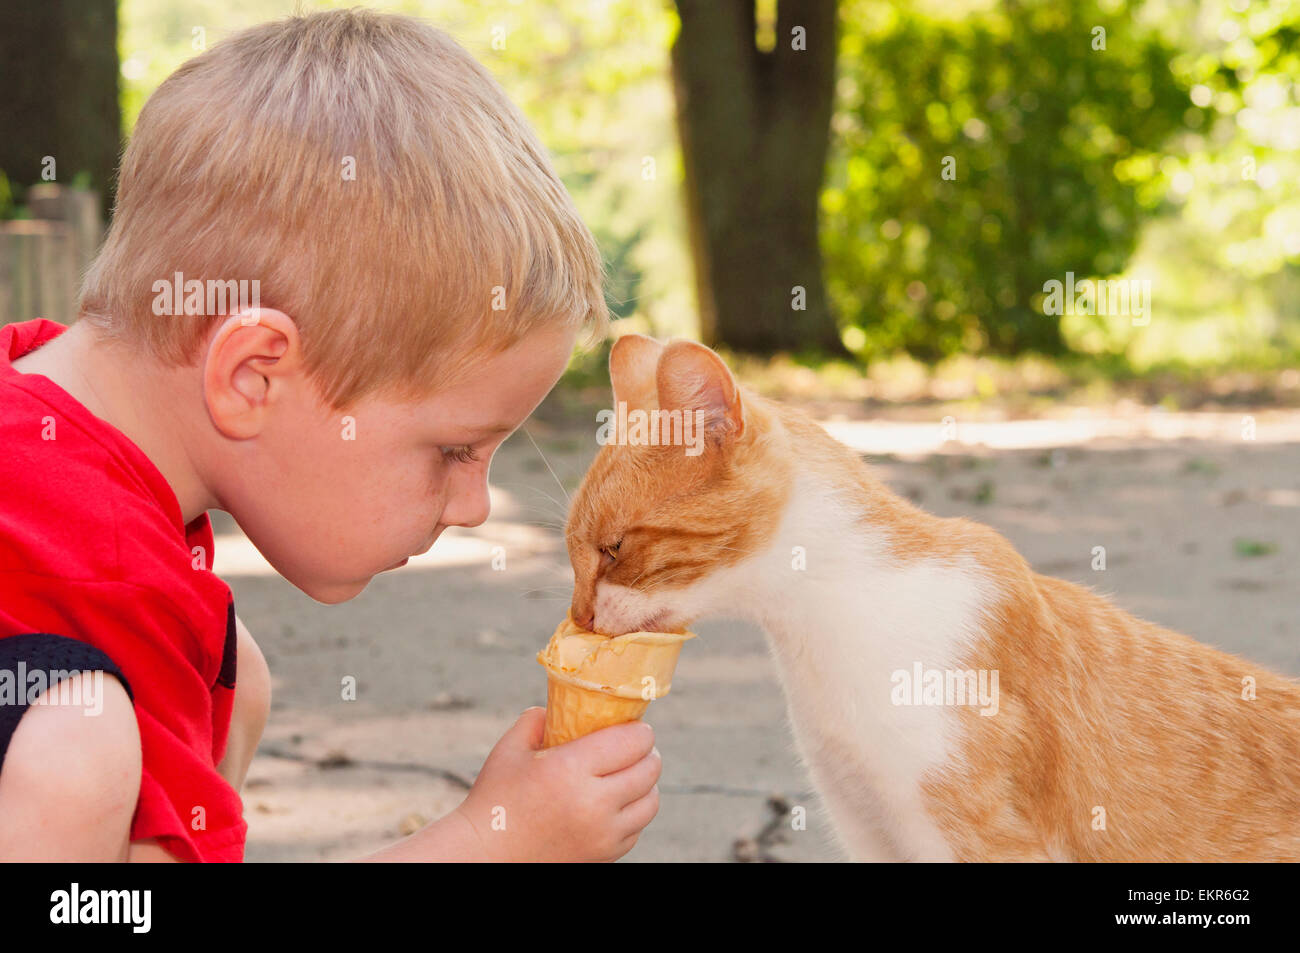 Child feeding cat his ice-cream cone - Stock Image